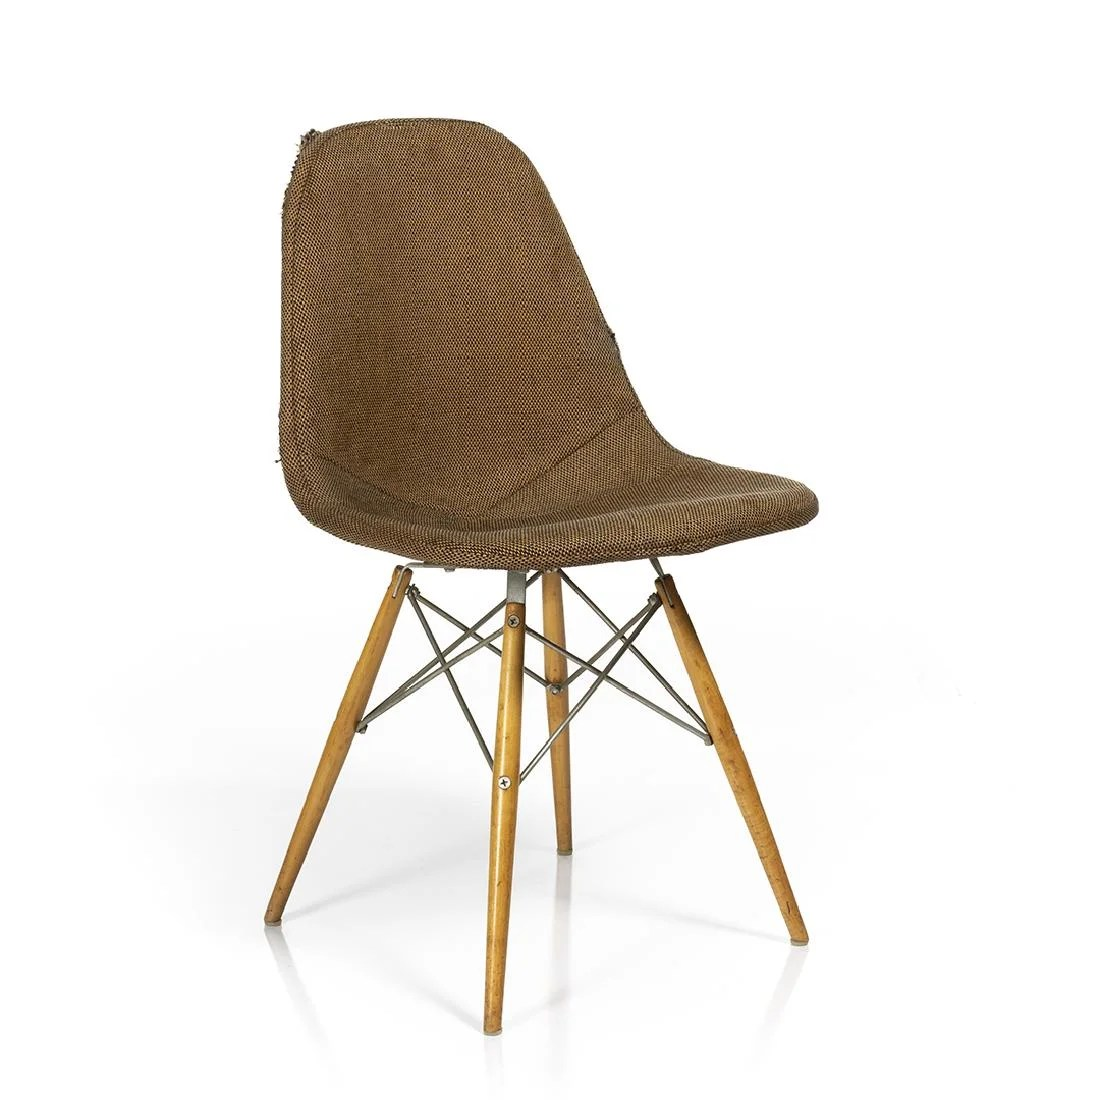 Charles Eames Charles Eames Dowel Leg Chair On Liveauctioneers